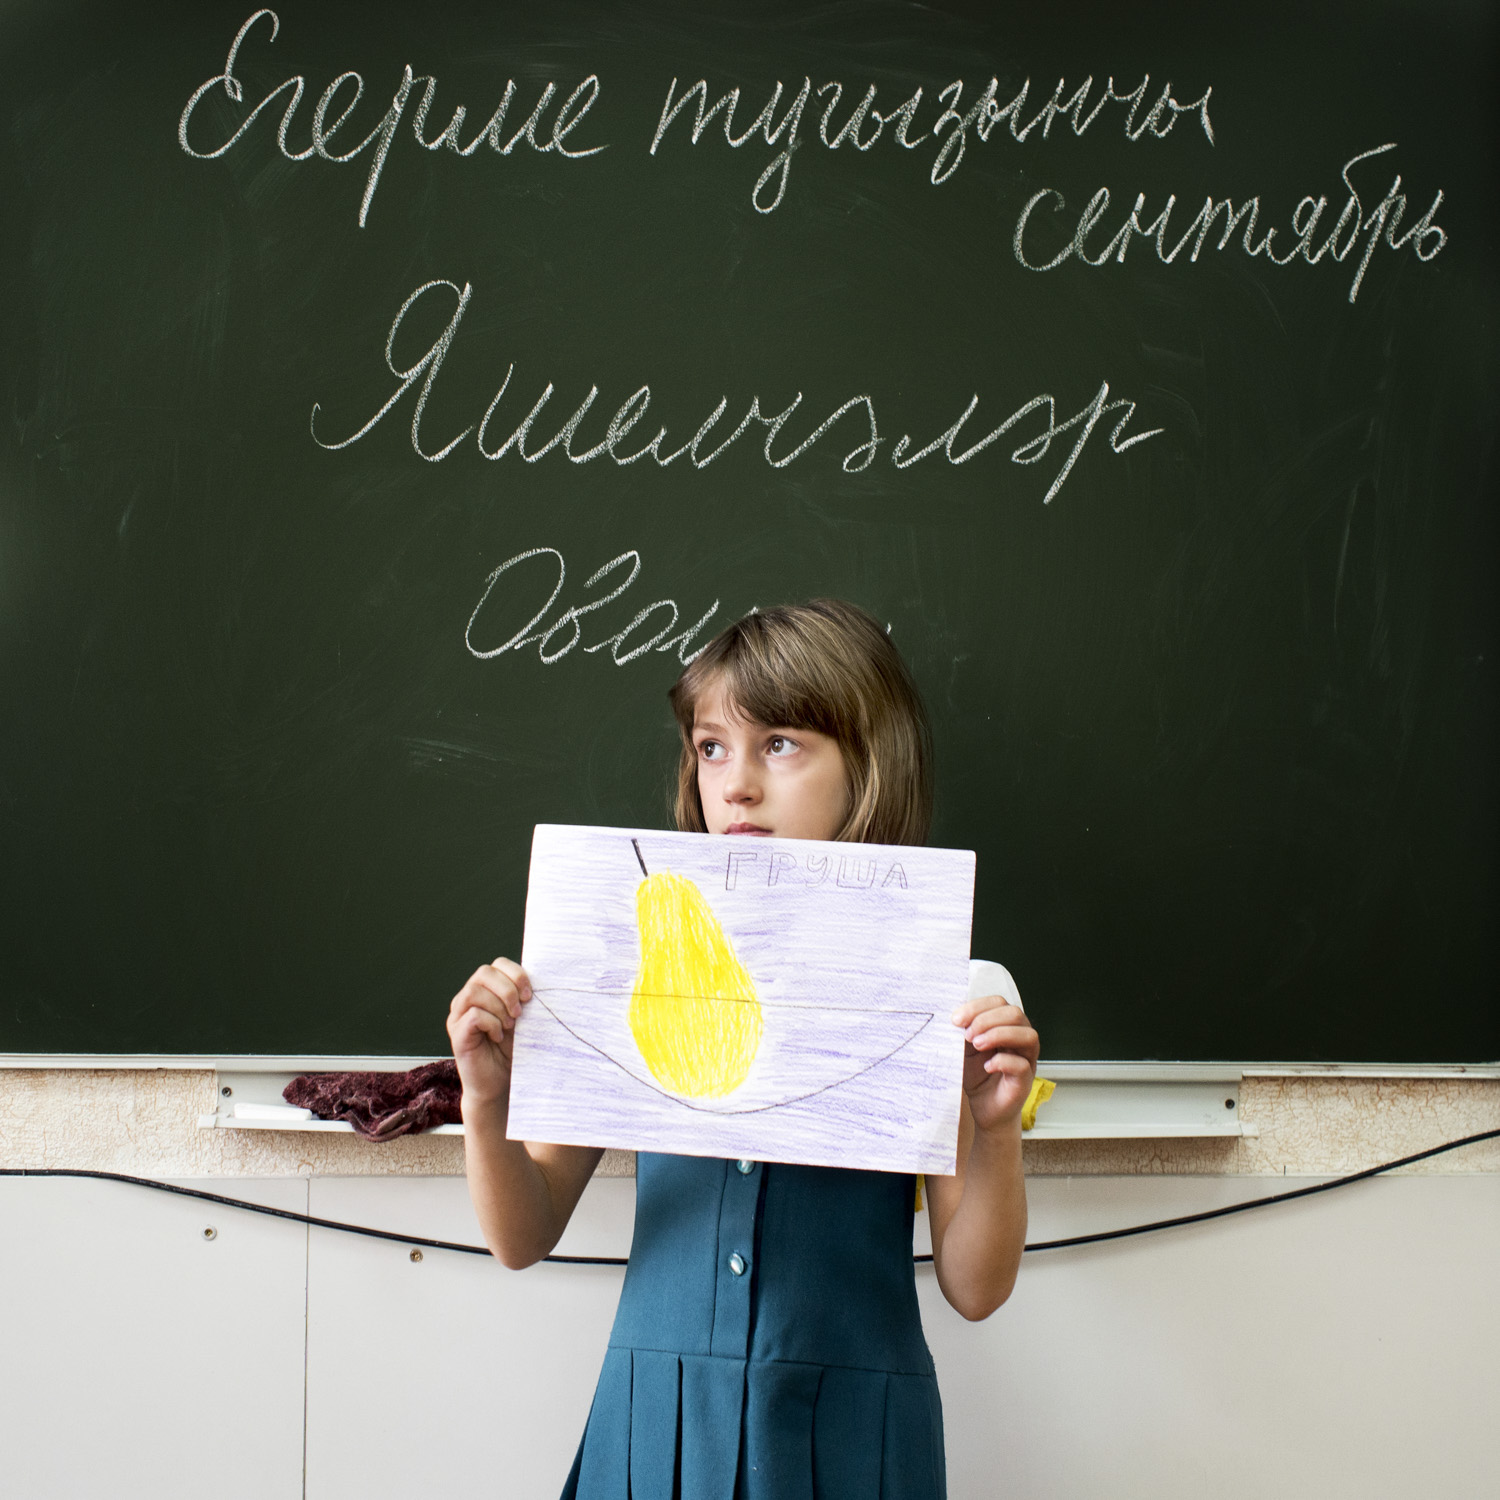 Gymansium 36, Tatar lessons at school for Russian and Tatar pupils, who don't speak Tatar at home. To deepen the sense of equality children are encouraged to speak both languages: Tartar and Russian.